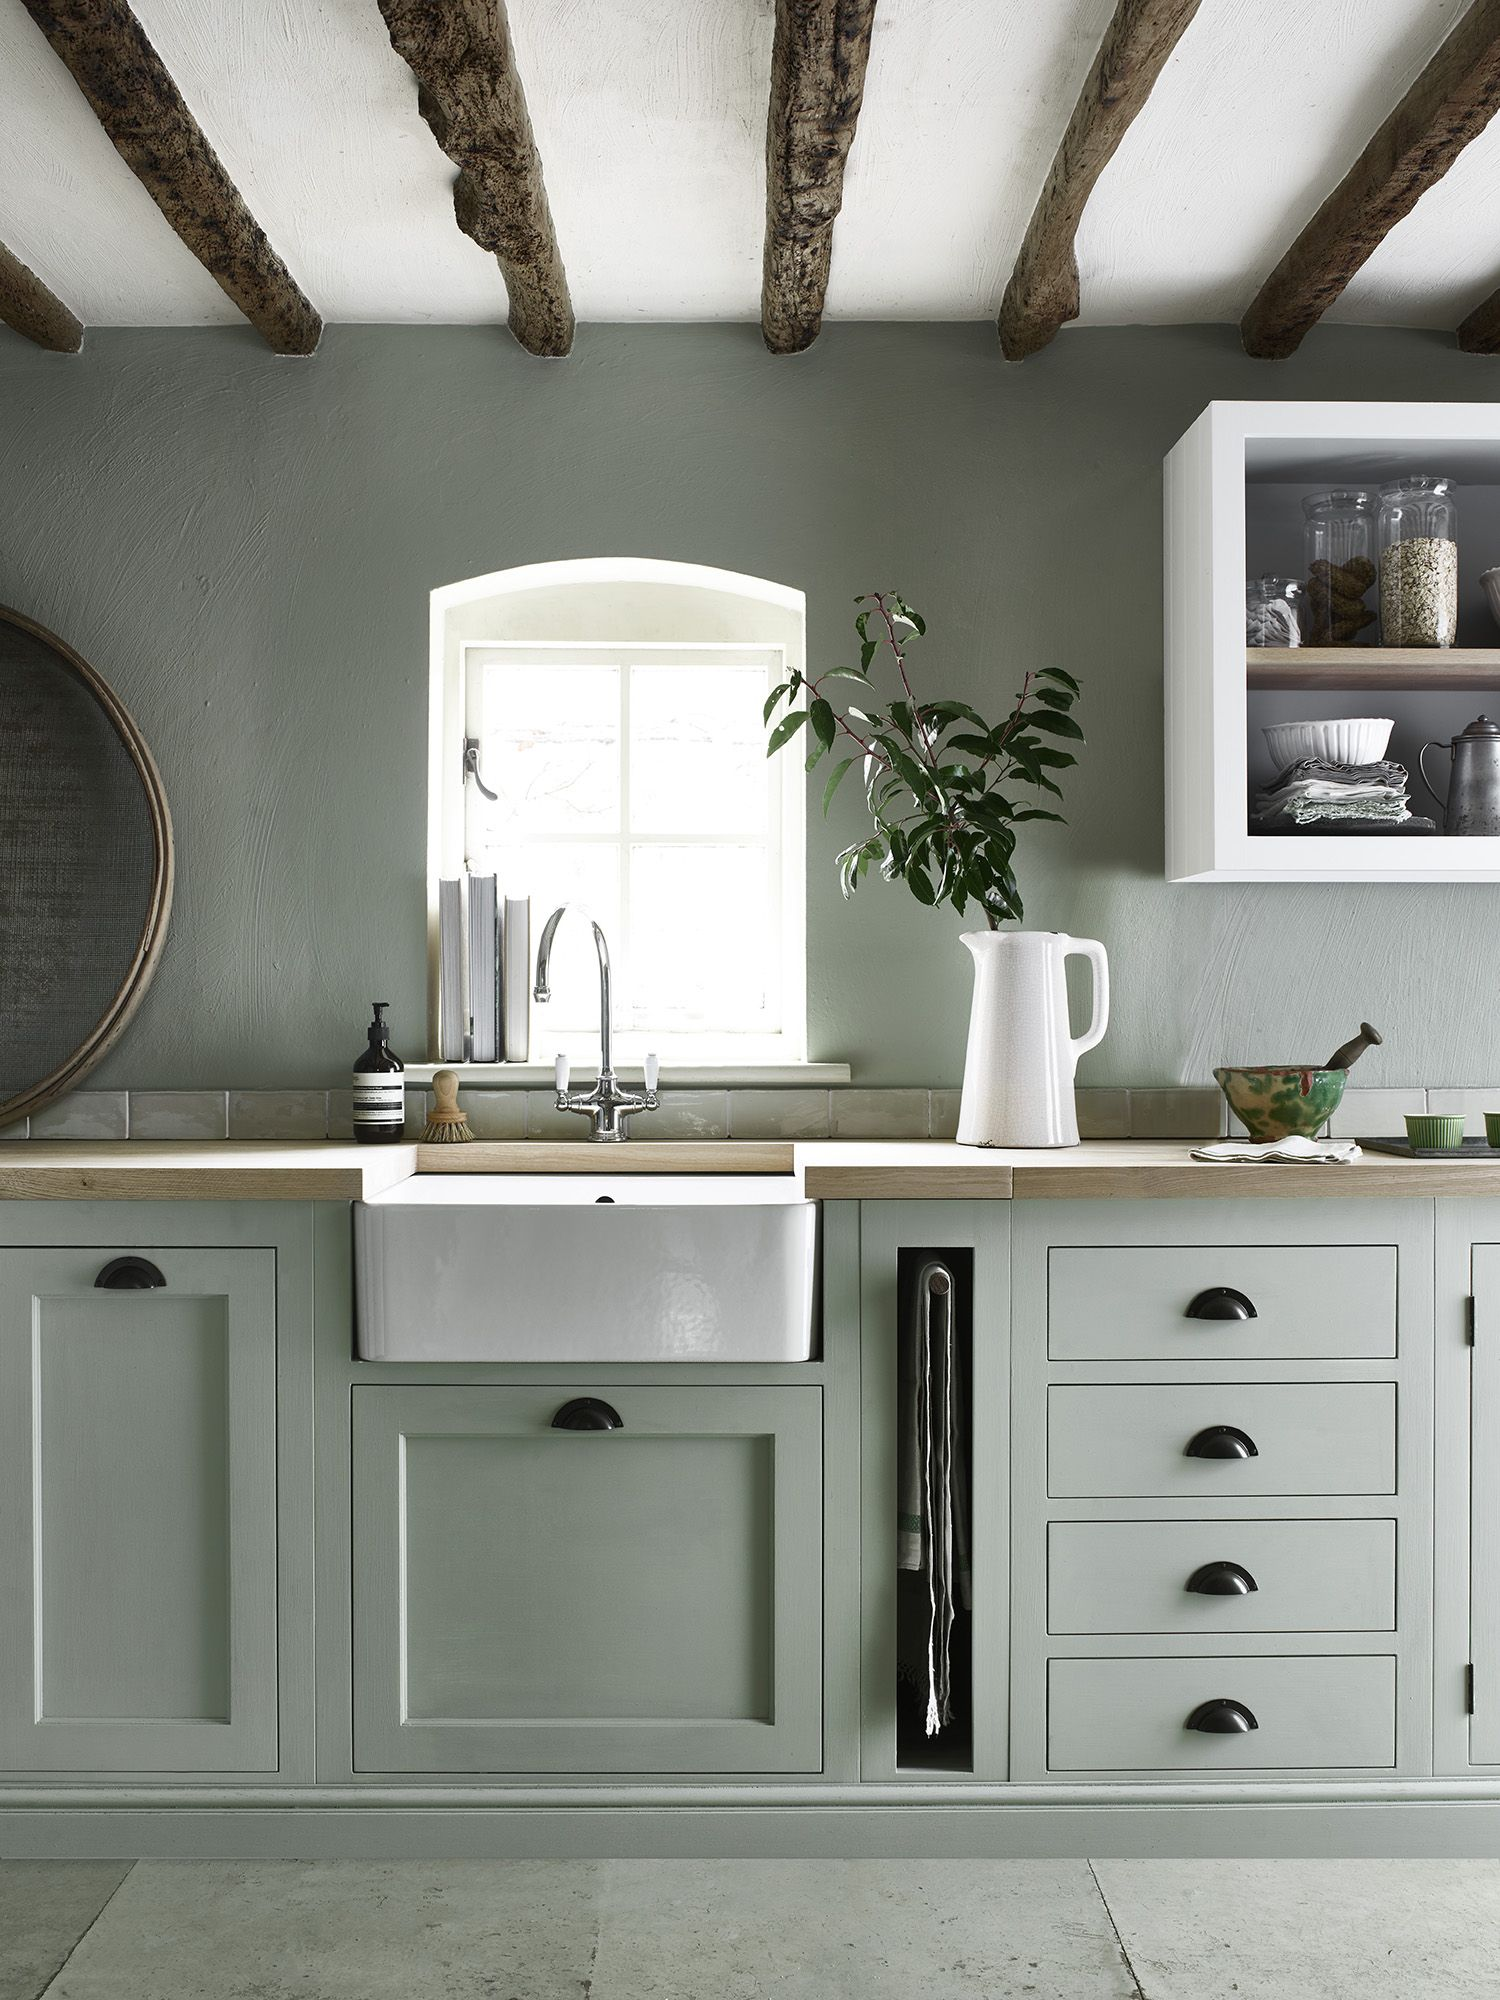 Henley Kitchen Handpainted In Sage Great Idea For Pull Out Towel - Dark grey painted kitchen cabinets